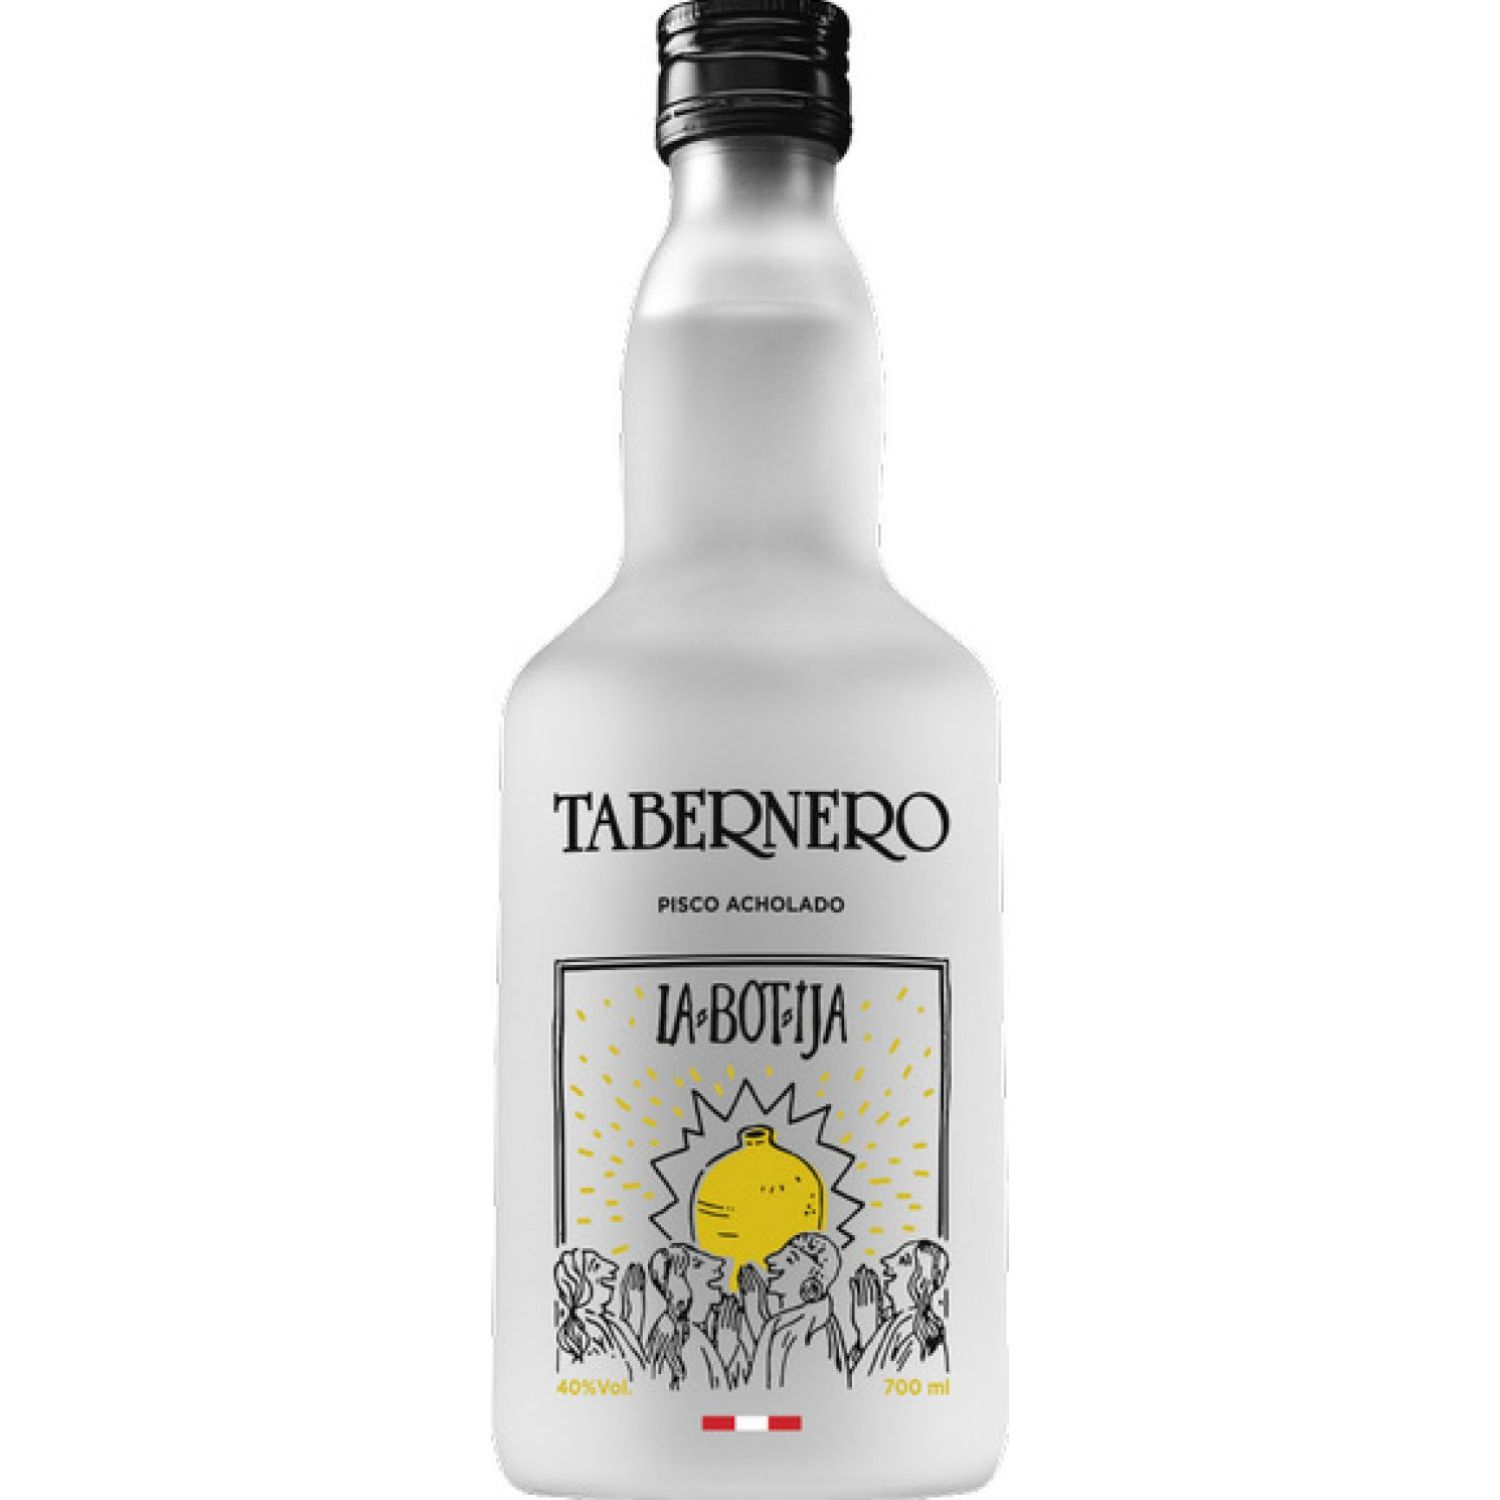 TABERNERO La Botija Pisco Acholado 700 Ml Sin color Brandy y aguardientes